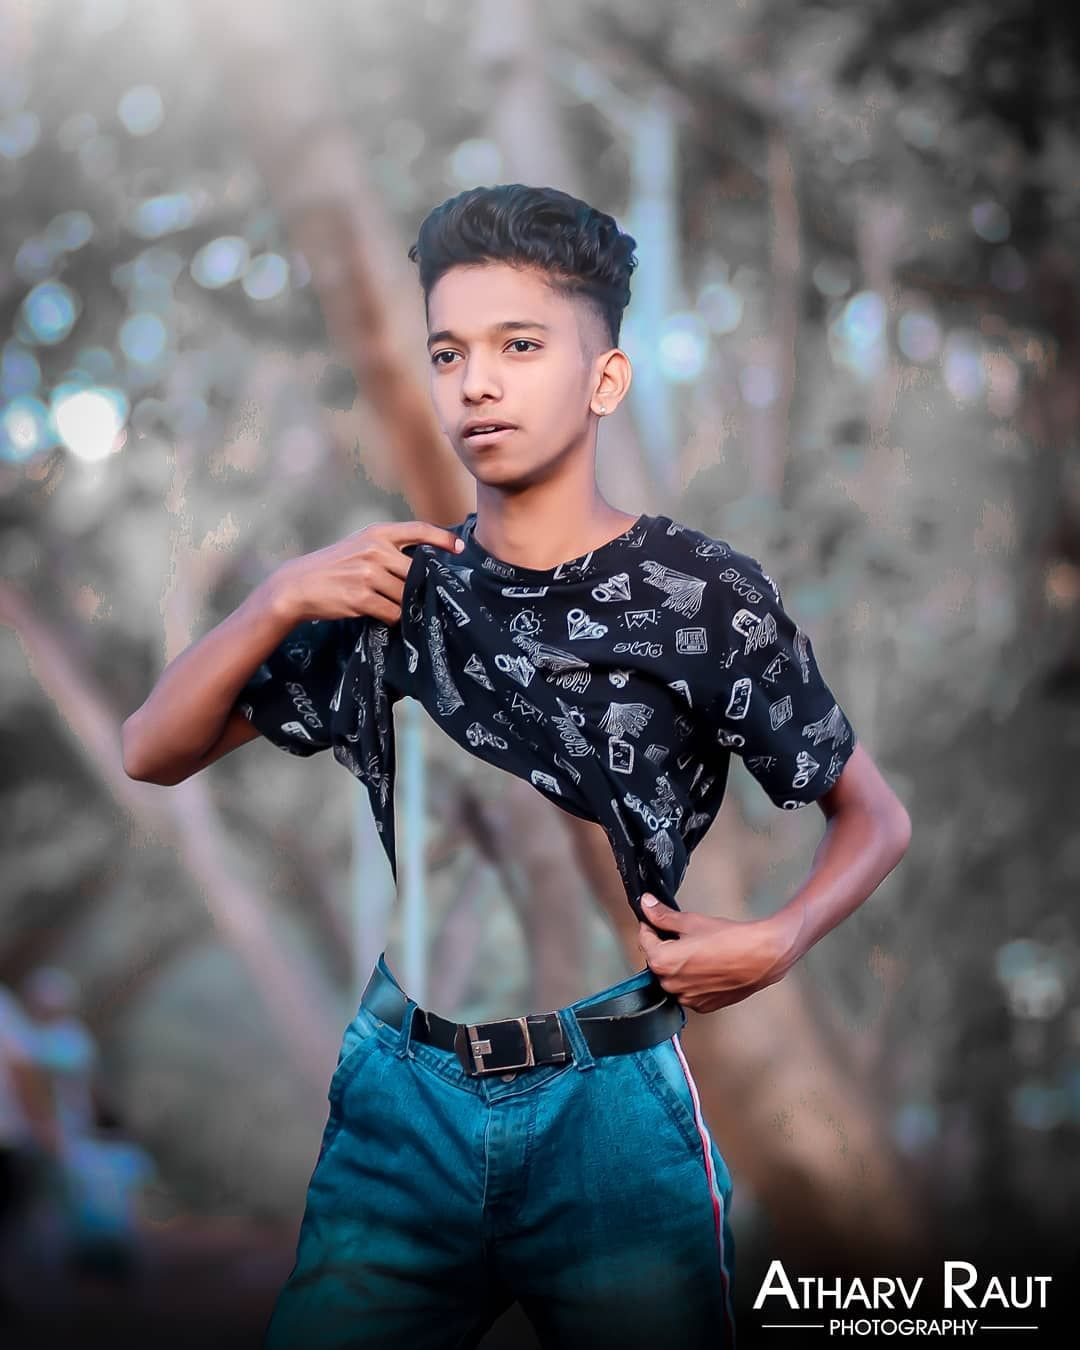 5 055 Likes 148 Comments Aniket Raut125 On Instagram In 2020 Photoshoot Pose Boy Photography Poses For Men Boy Photography Poses